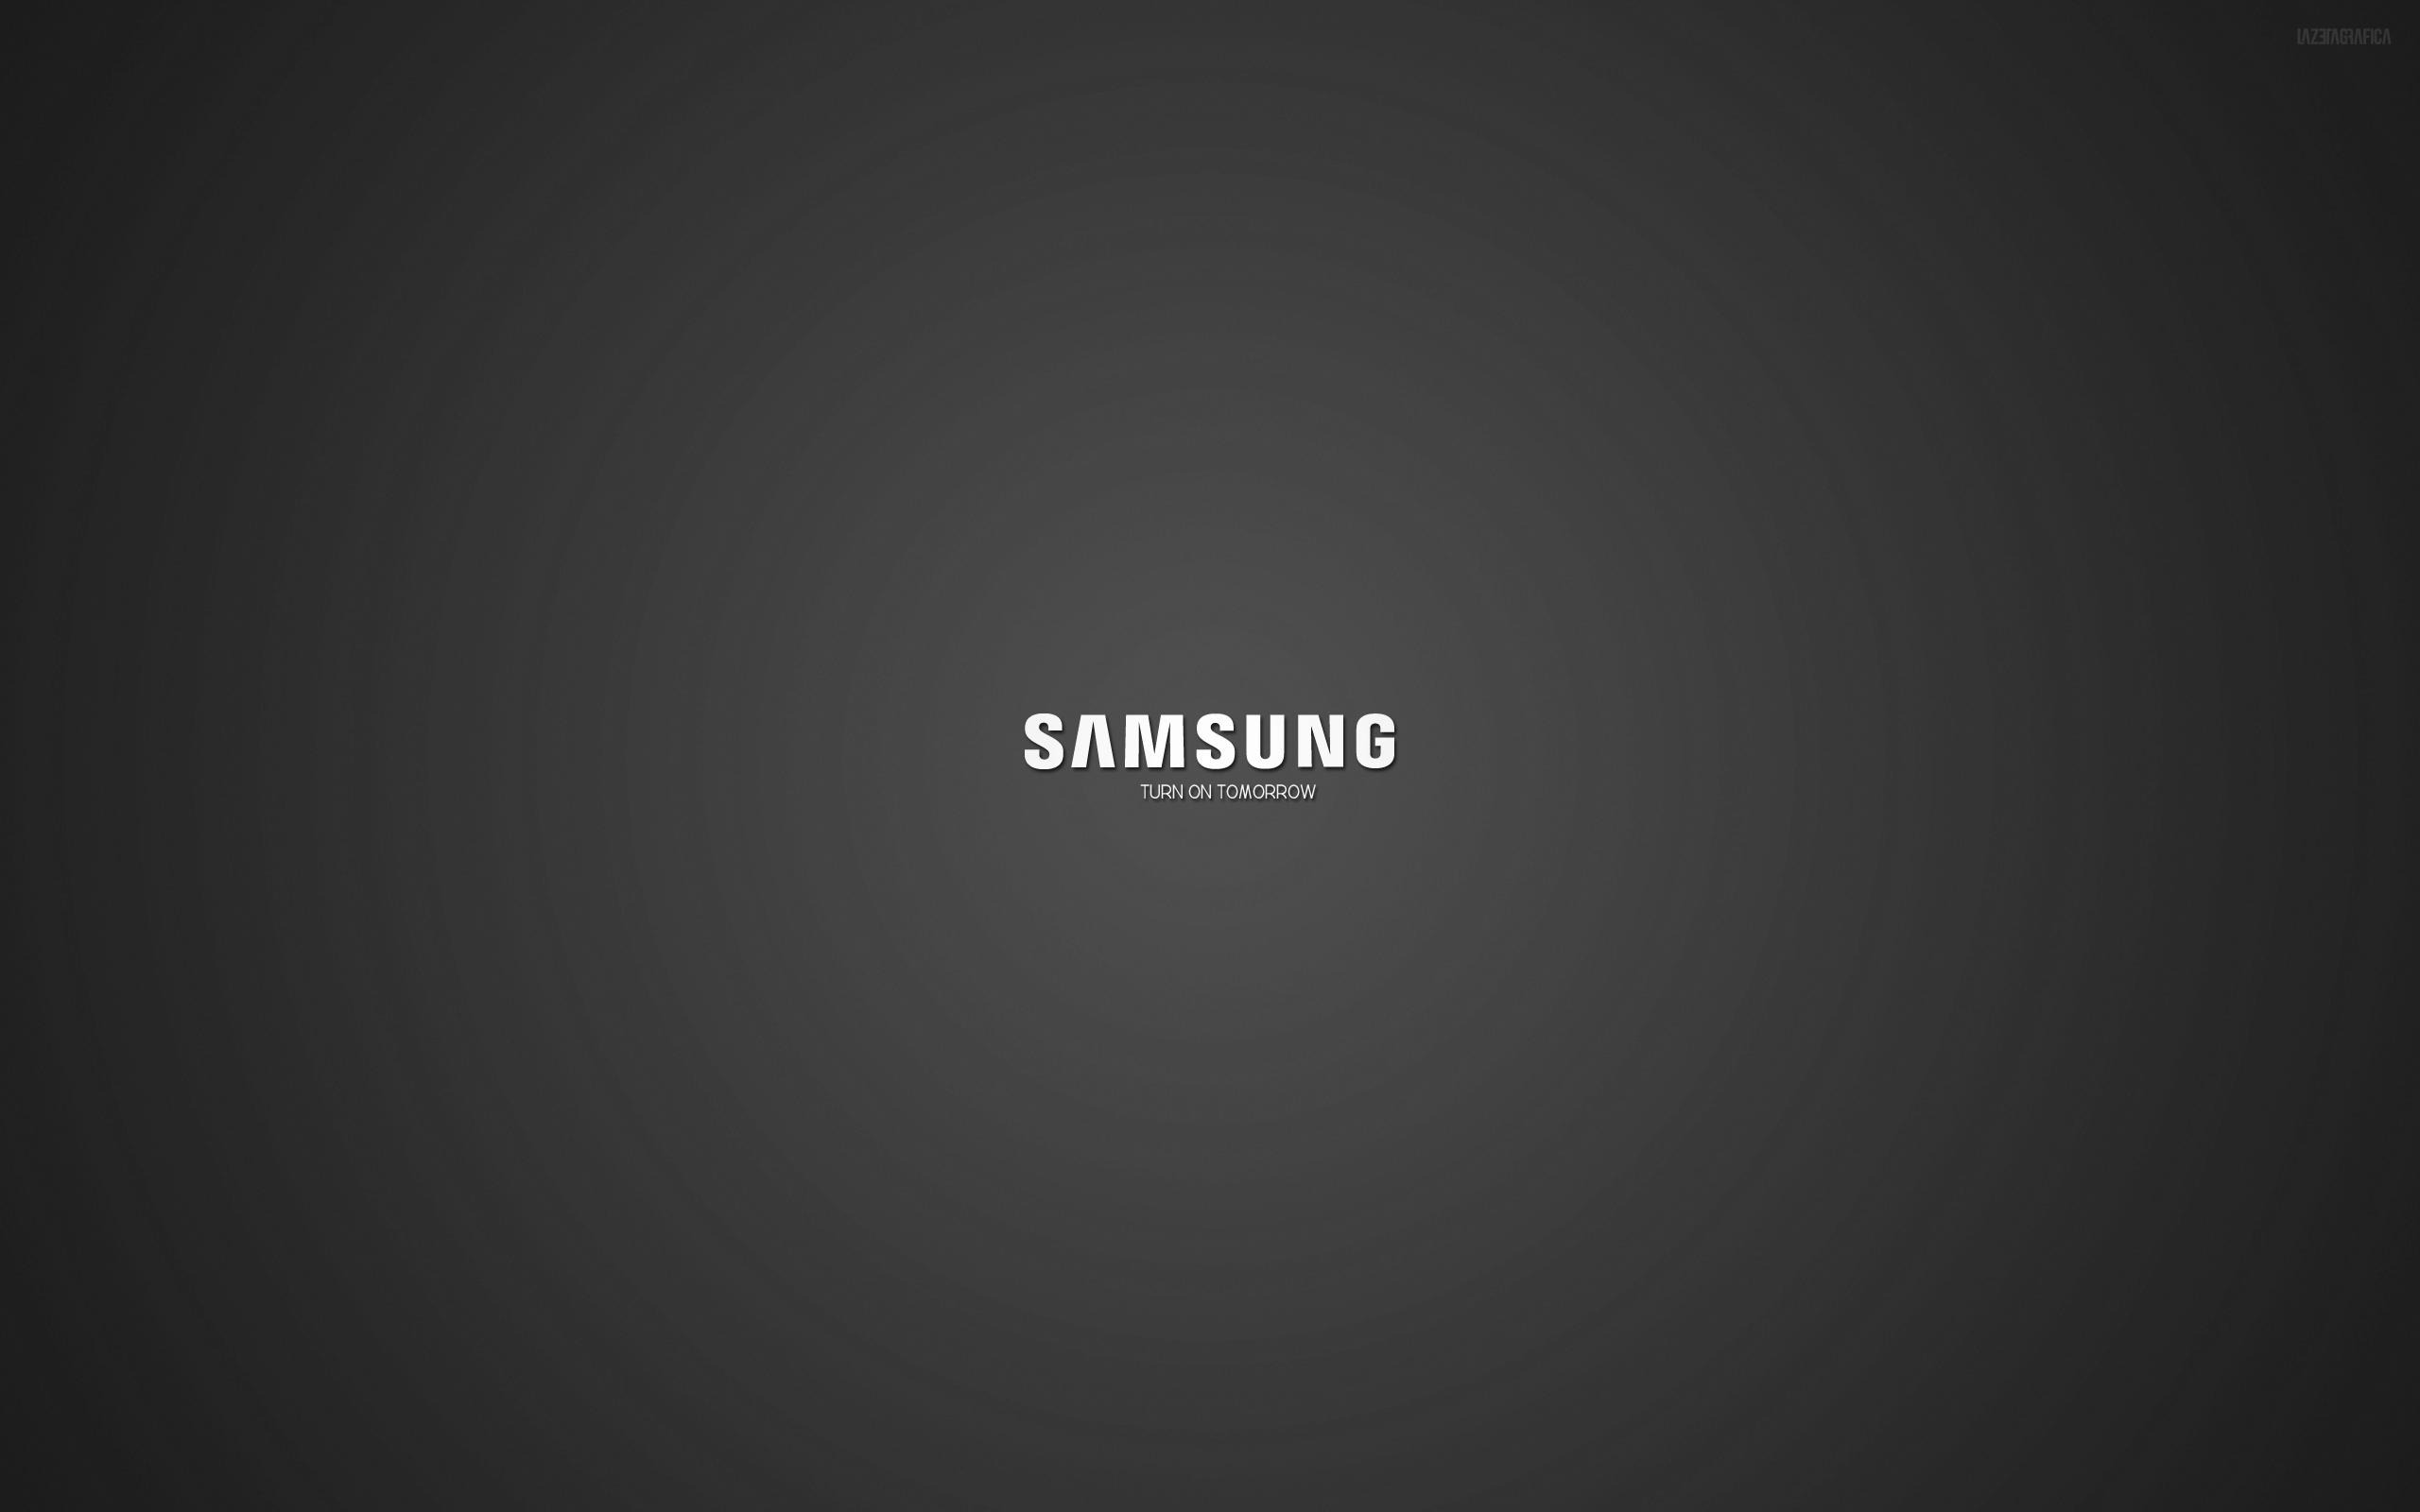 Samsung Laptop Wallpapers On Wallpaperdog